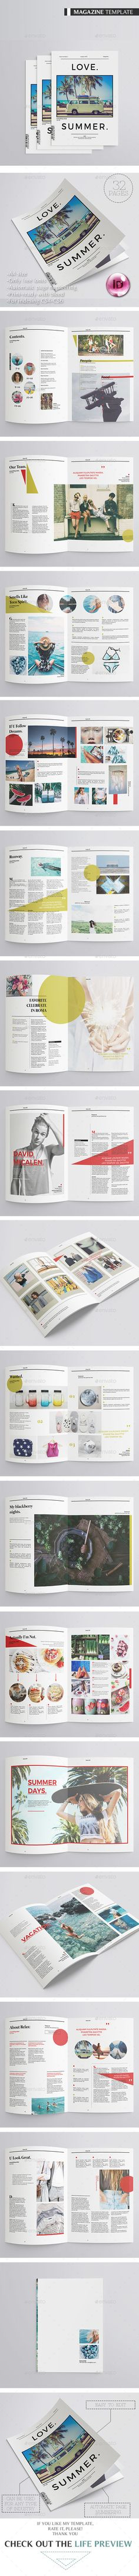 Multipurpose Magazine 32 pages Template 	InDesign INDD. Download here: https://graphicriver.net/item/multipurpose-magazine-32-pages/17300923?ref=ksioks